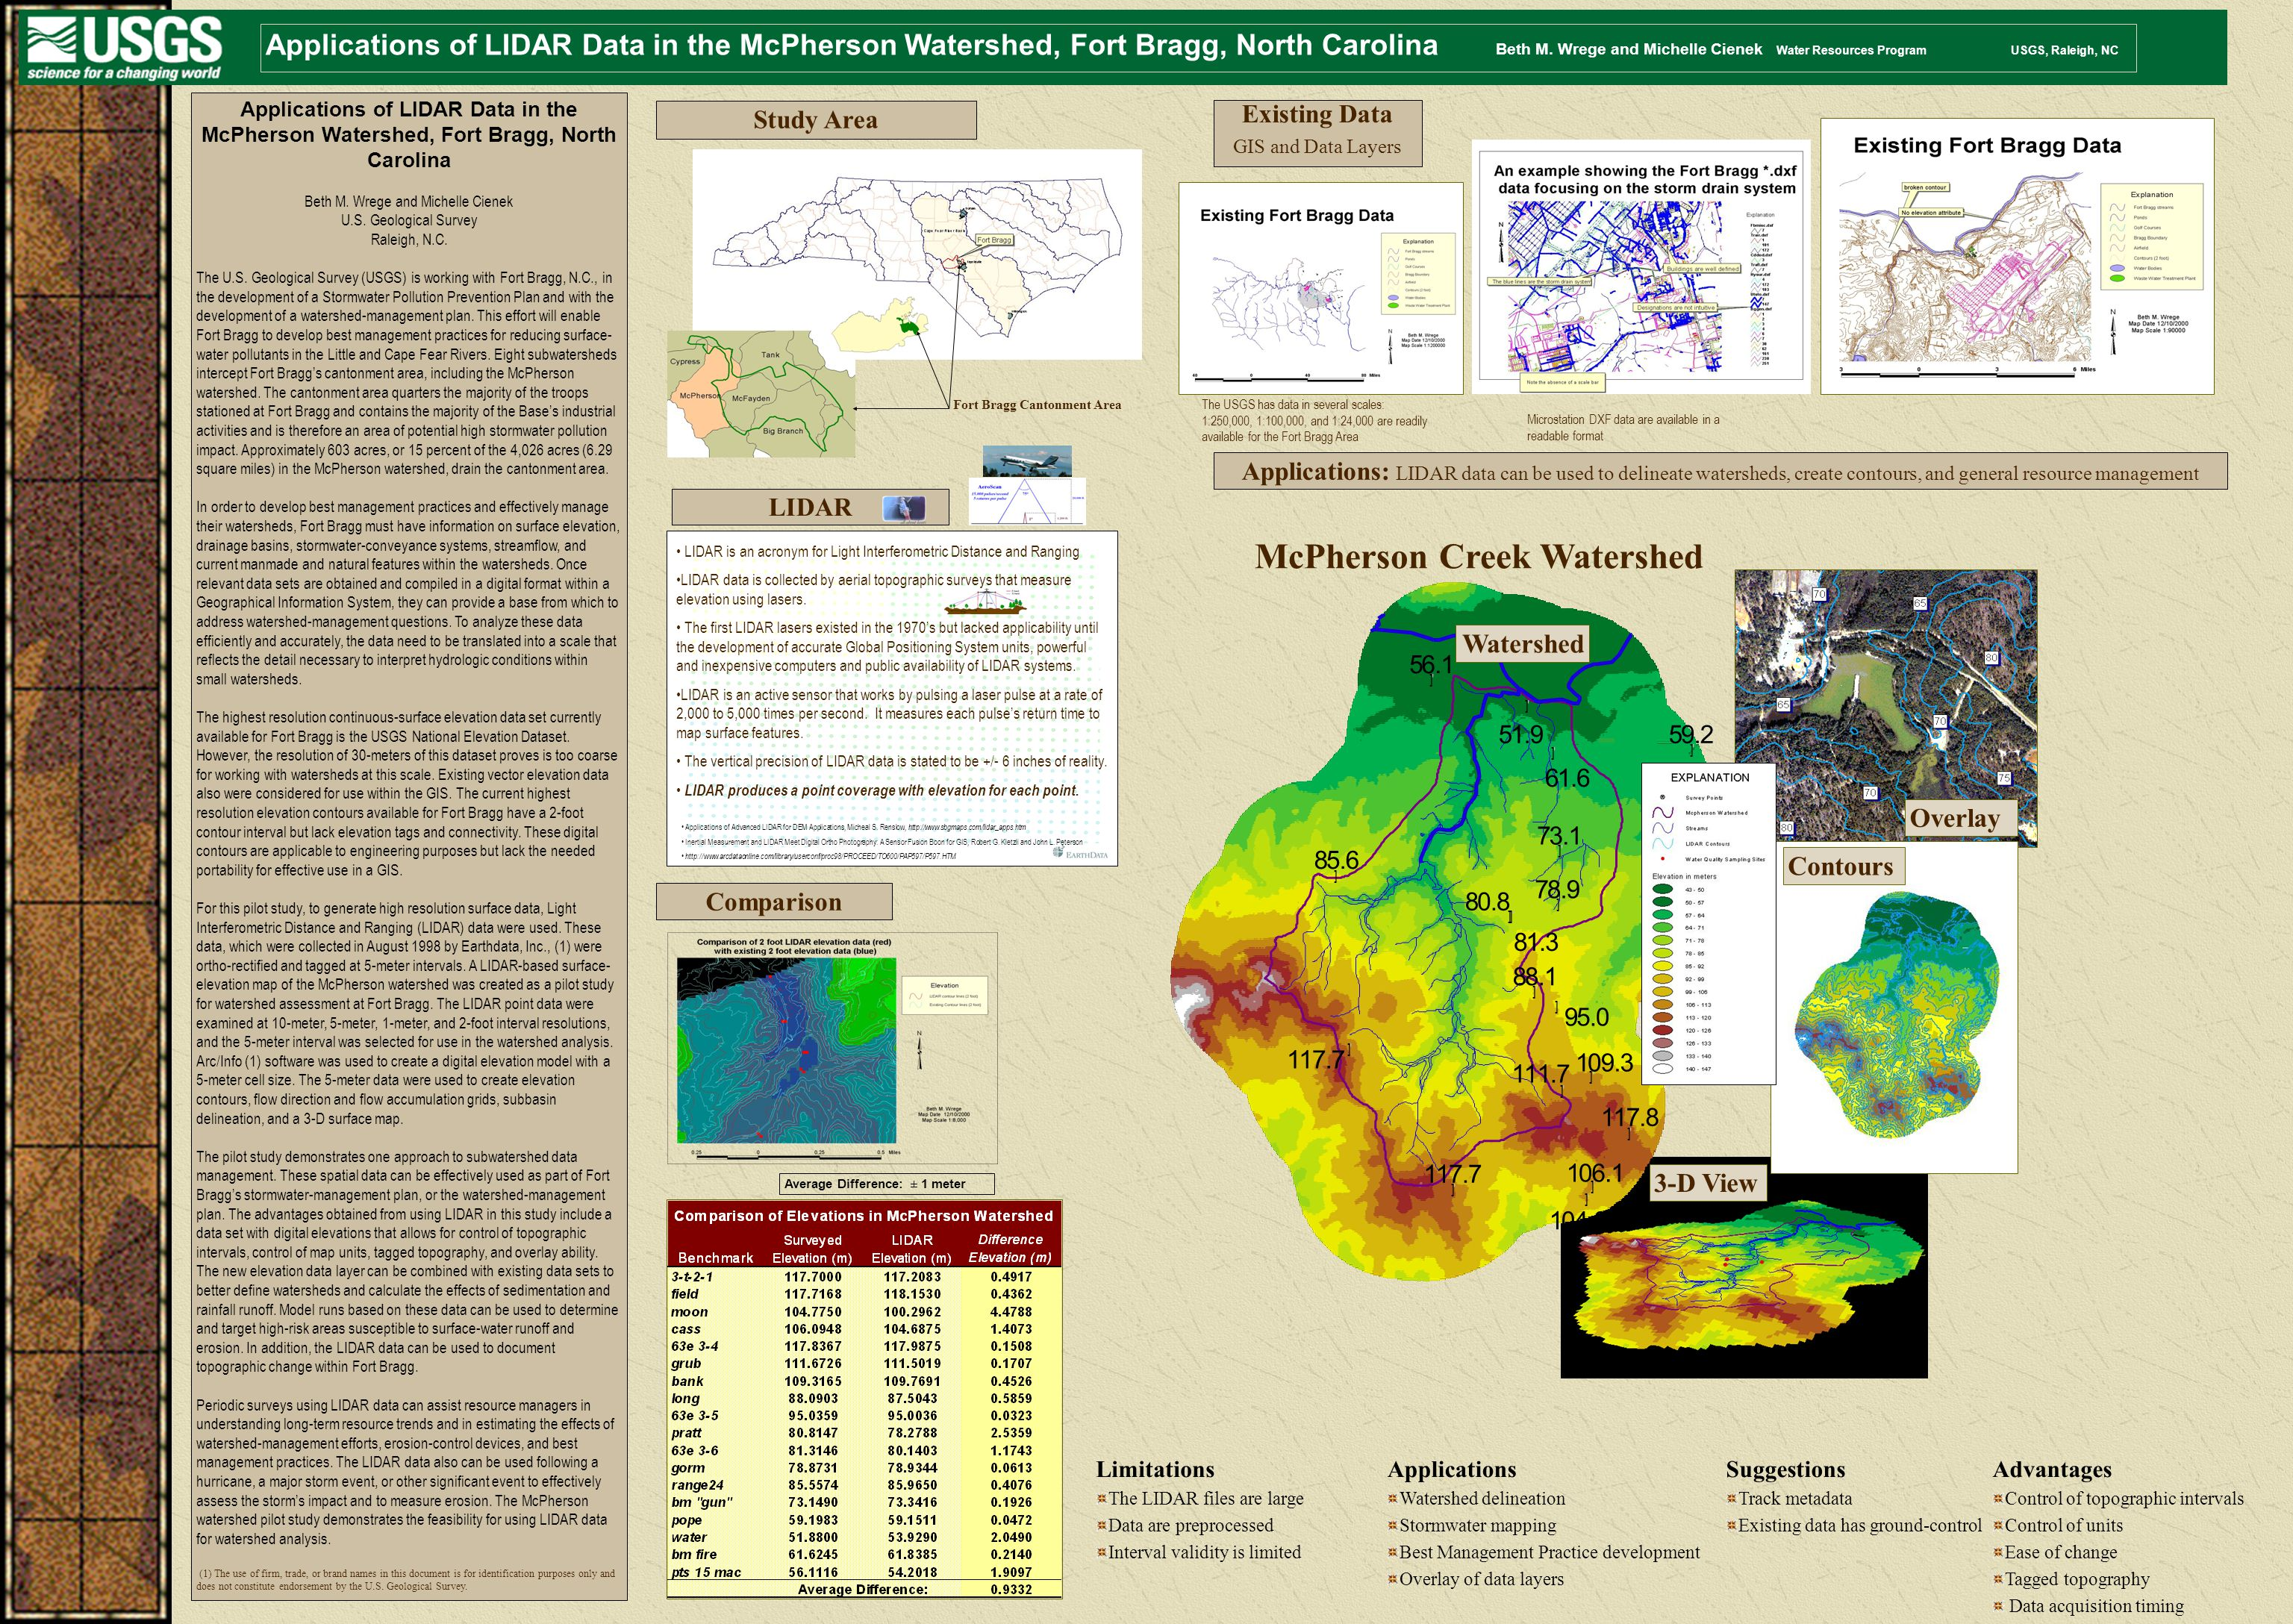 7.7 104.8 56.1 95.0 117.7 117.8 81.3 Applications of LIDAR Data in the McPherson Watershed, Fort Bragg, North Carolina Beth M. Wrege and Michelle Cien